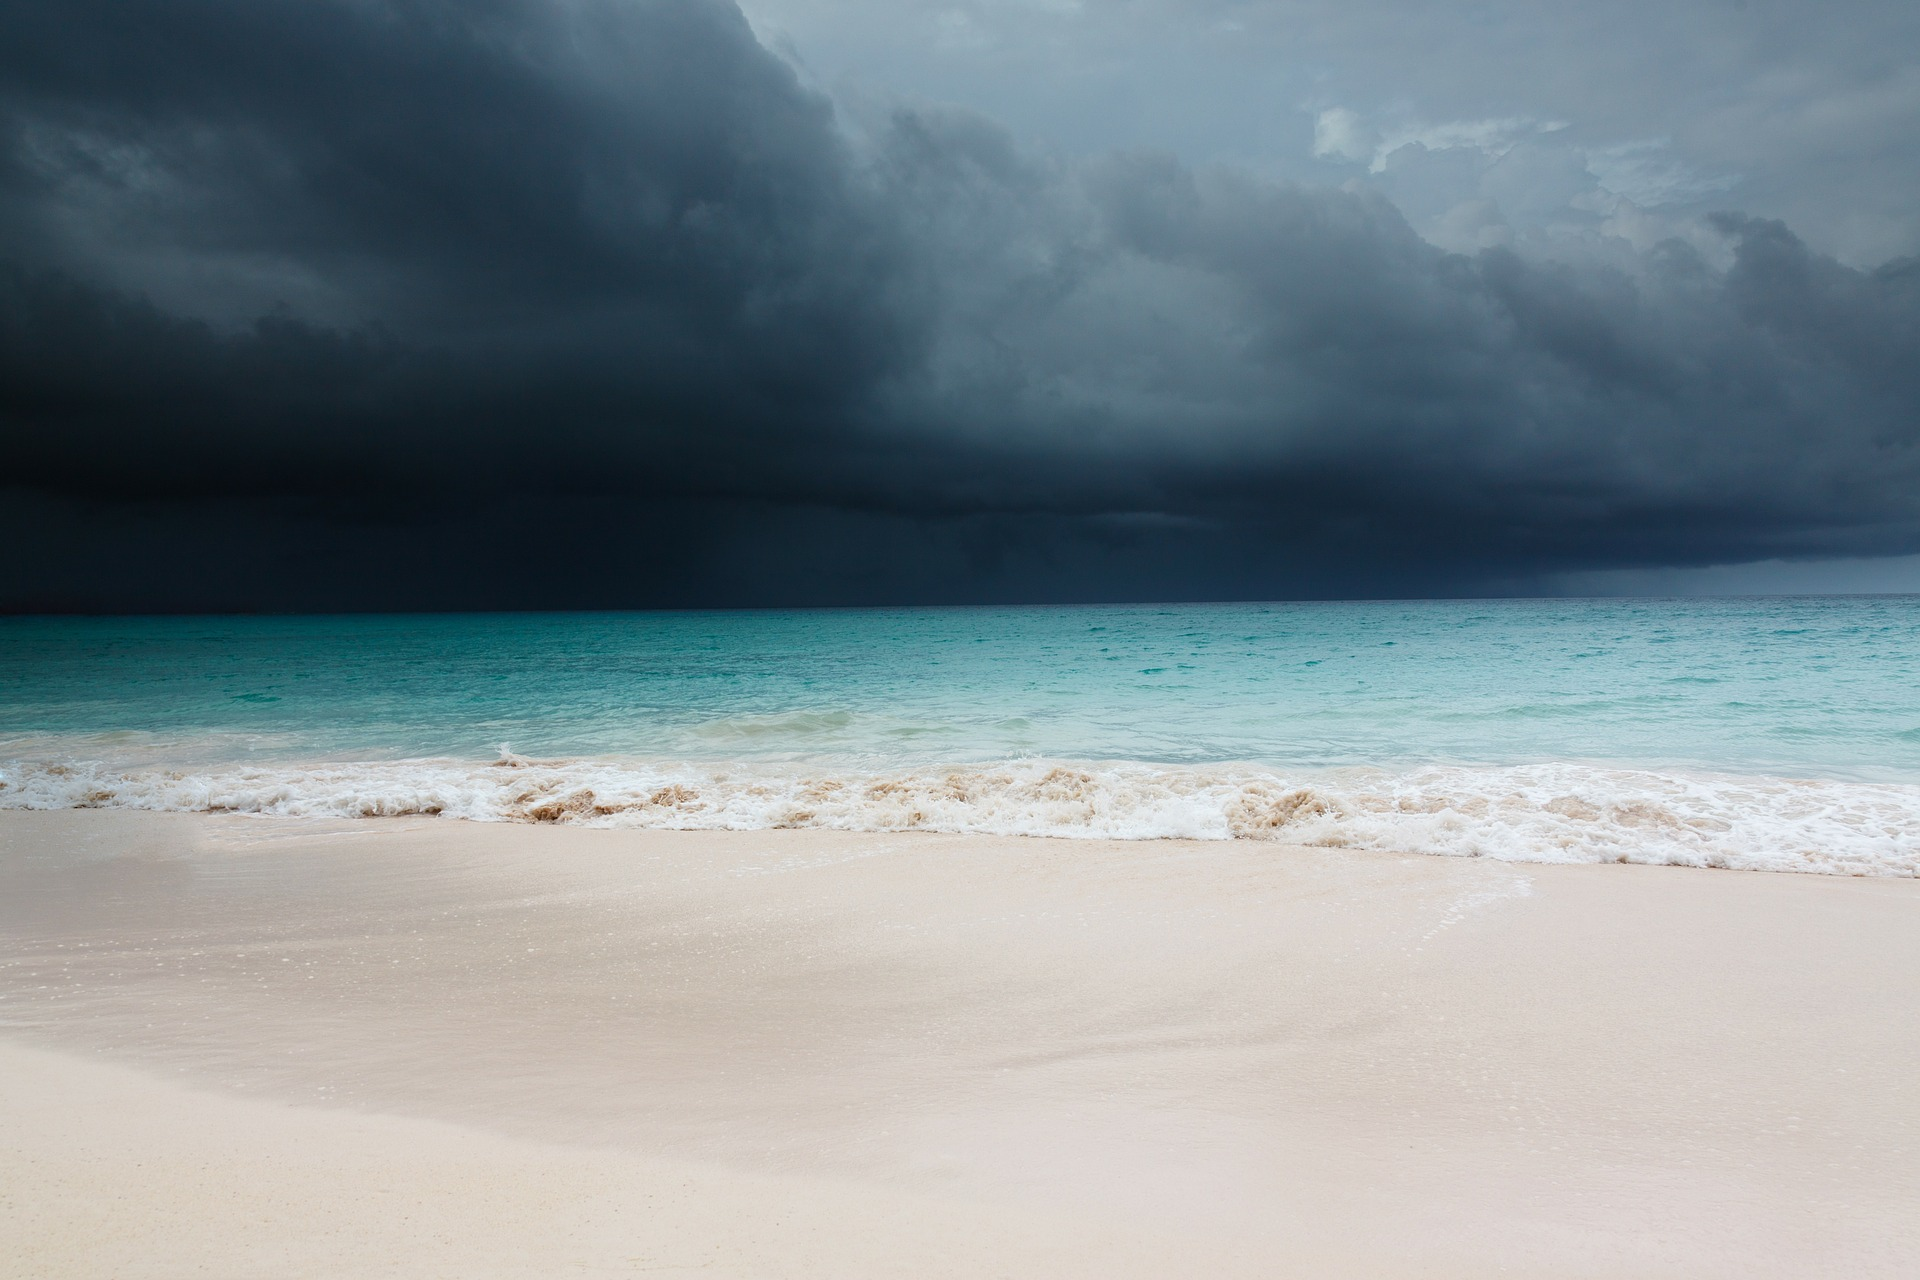 Safeguard your honeymoon - Precautions for an August or september trip to the Caribbean